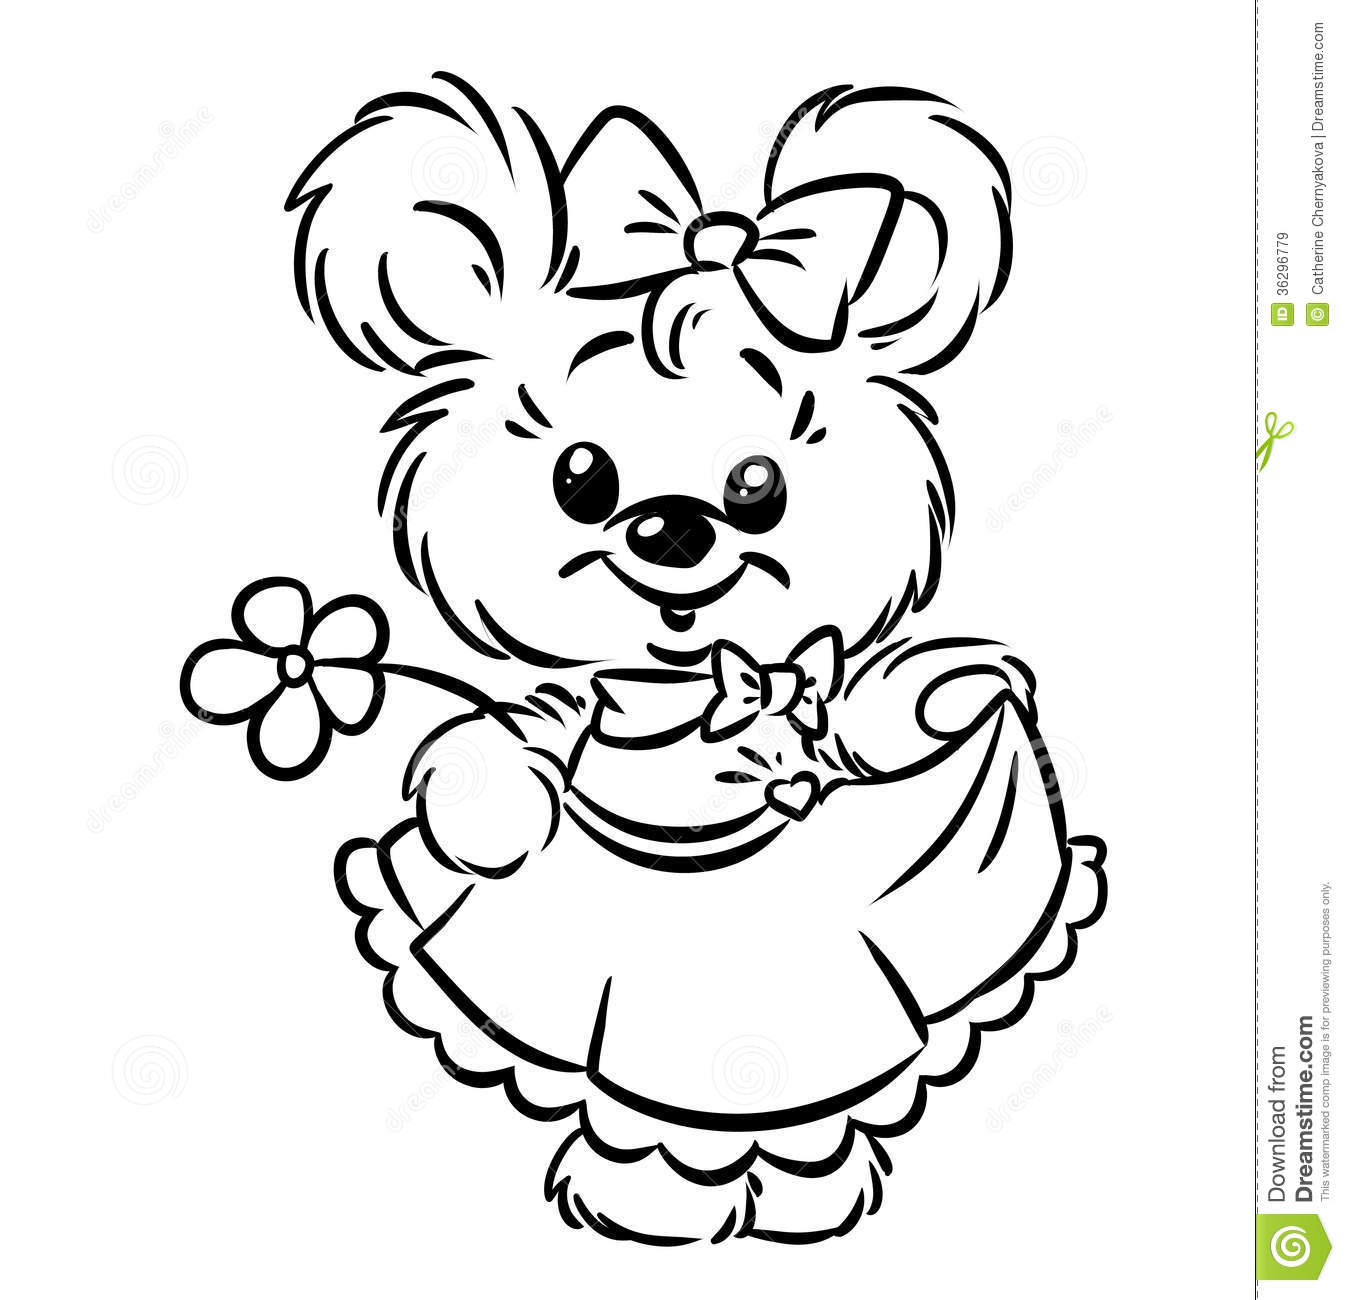 Best ideas about Flower Coloring Sheets For Girls . Save or Pin Flower Now.